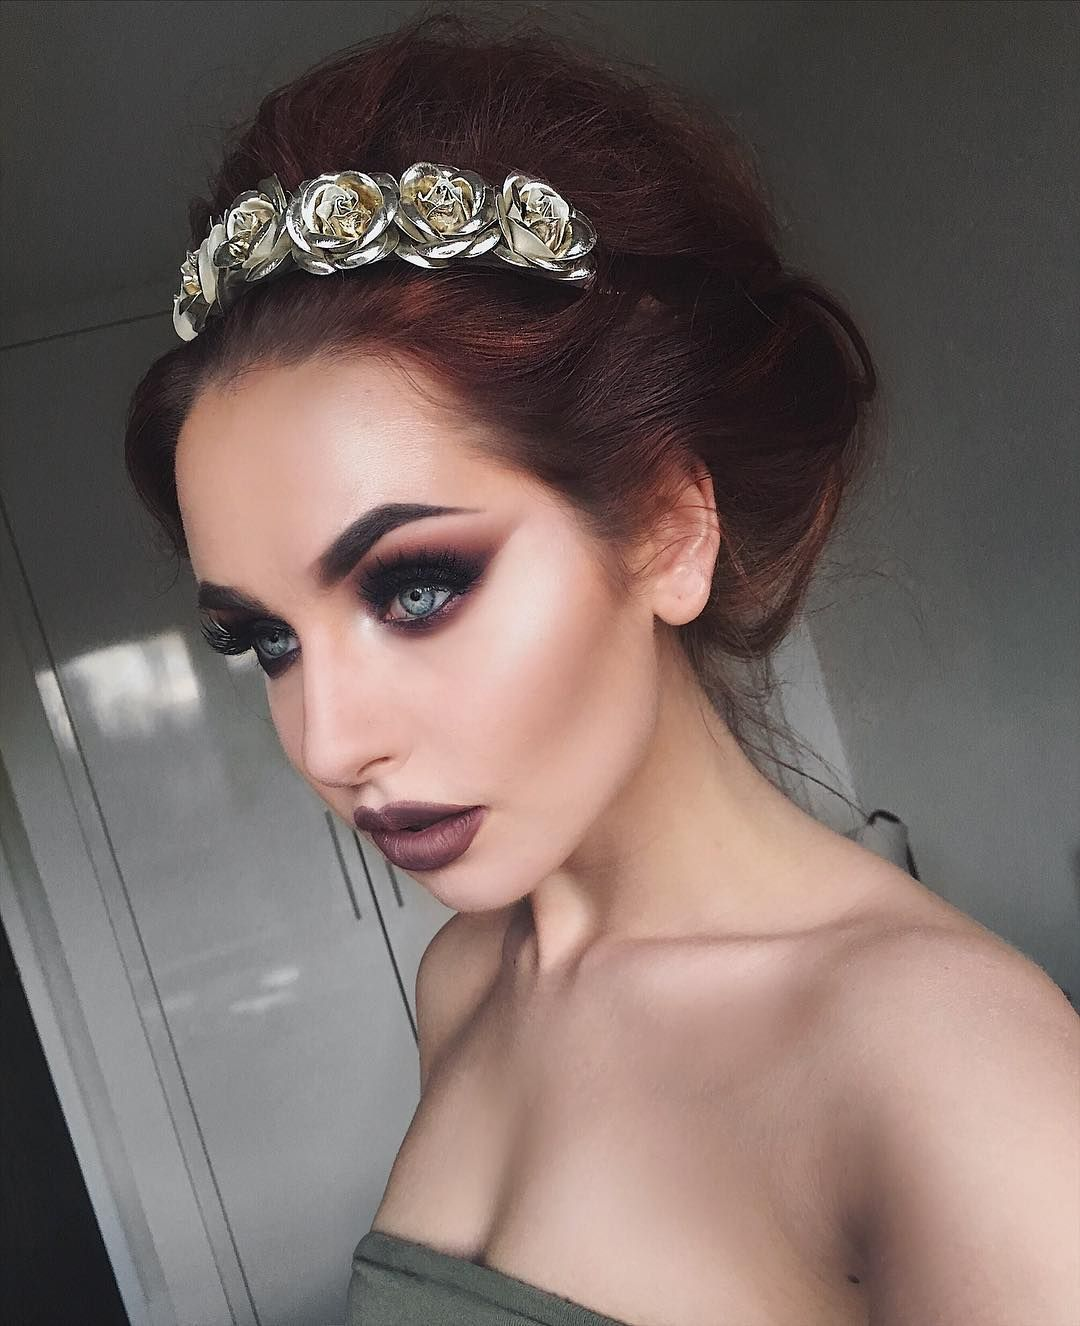 Makeup Inspo in 2021   Creative makeup looks, Pretty